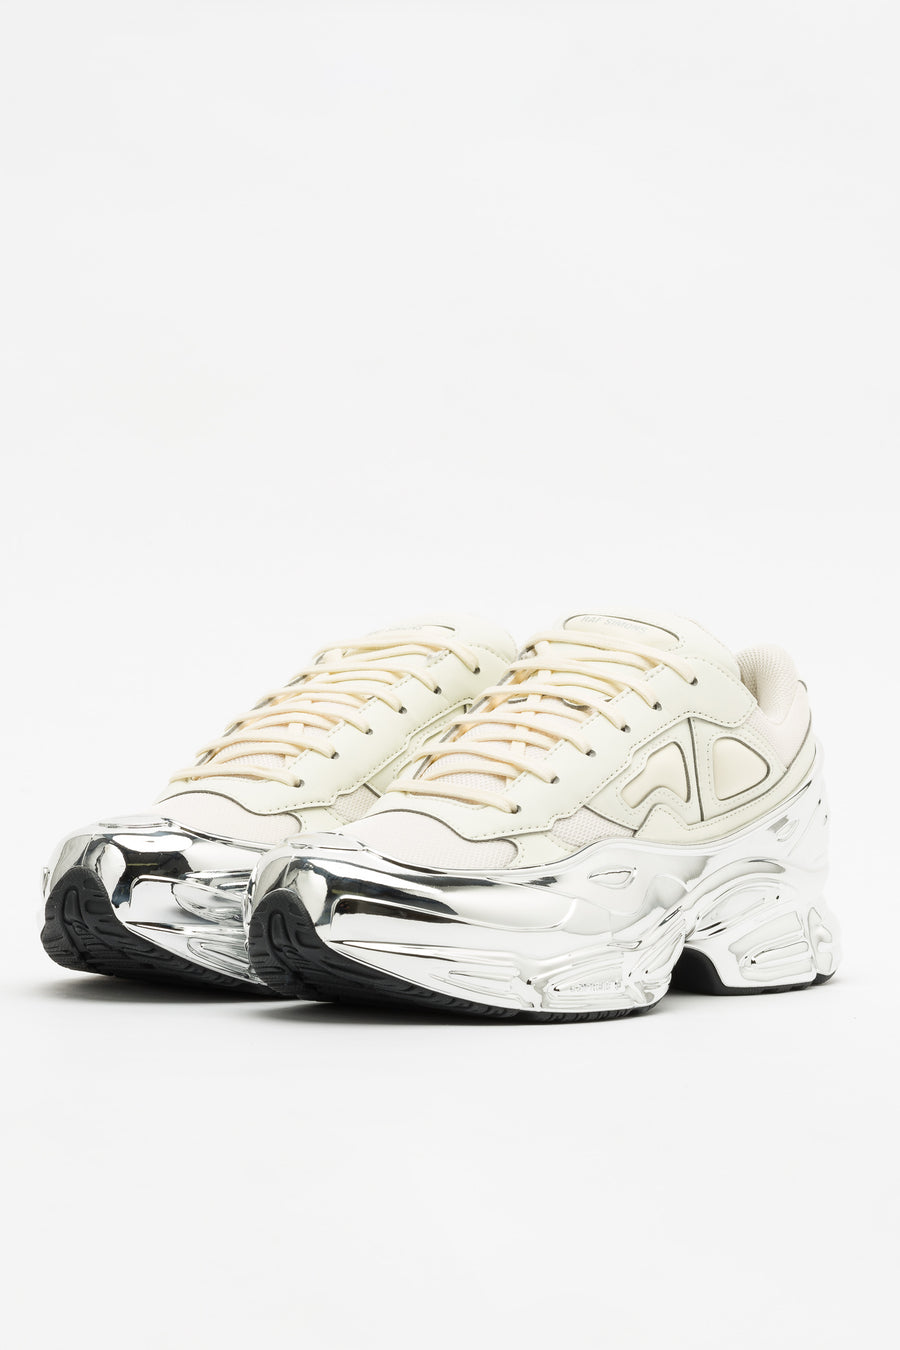 adidas RS Ozweego in White/Silver Metallic - Notre